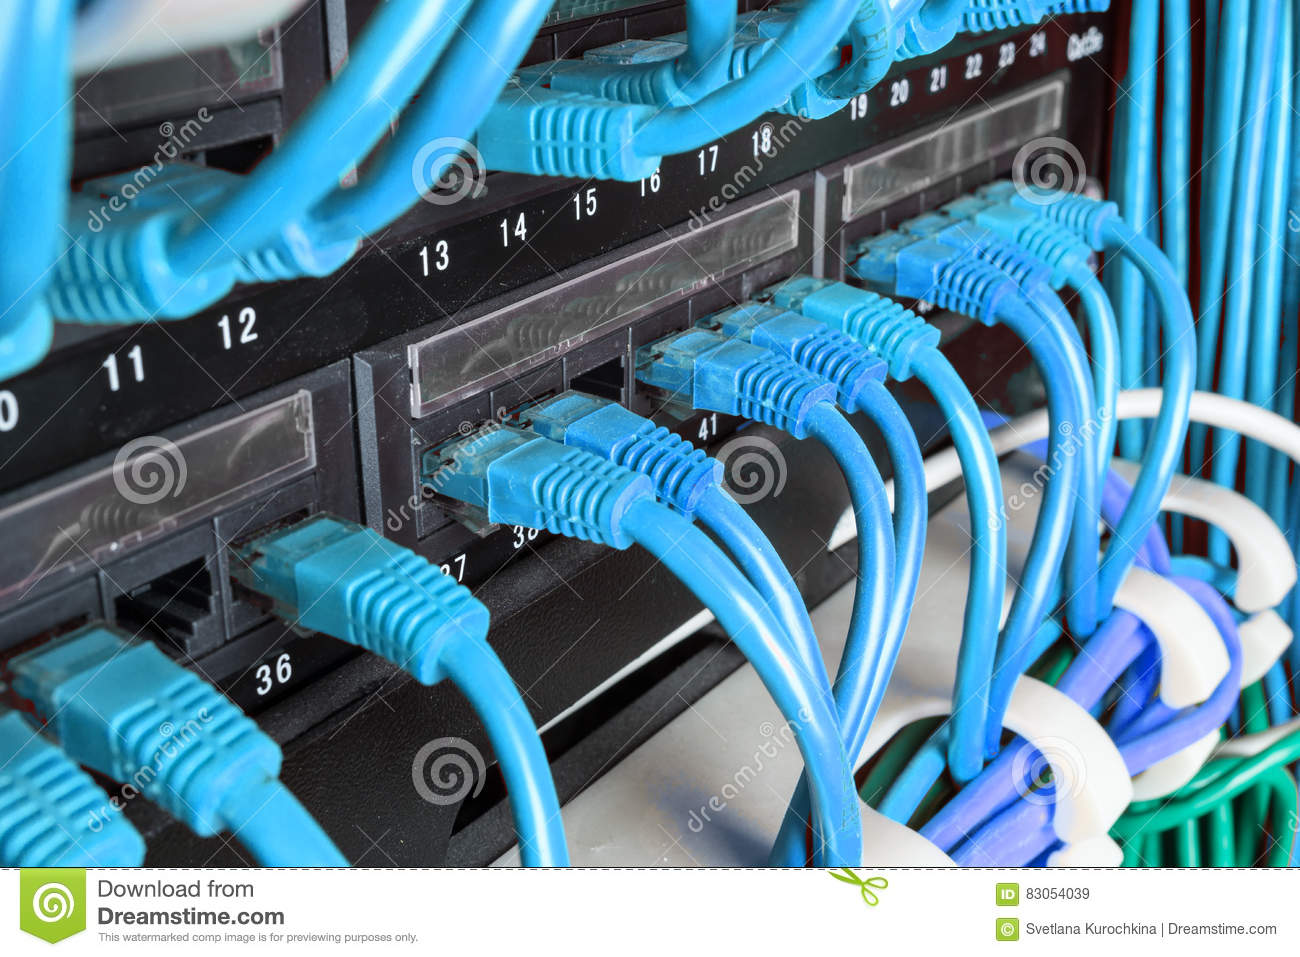 hight resolution of server rack with green internet patch cord cables connected to patch panel in server room